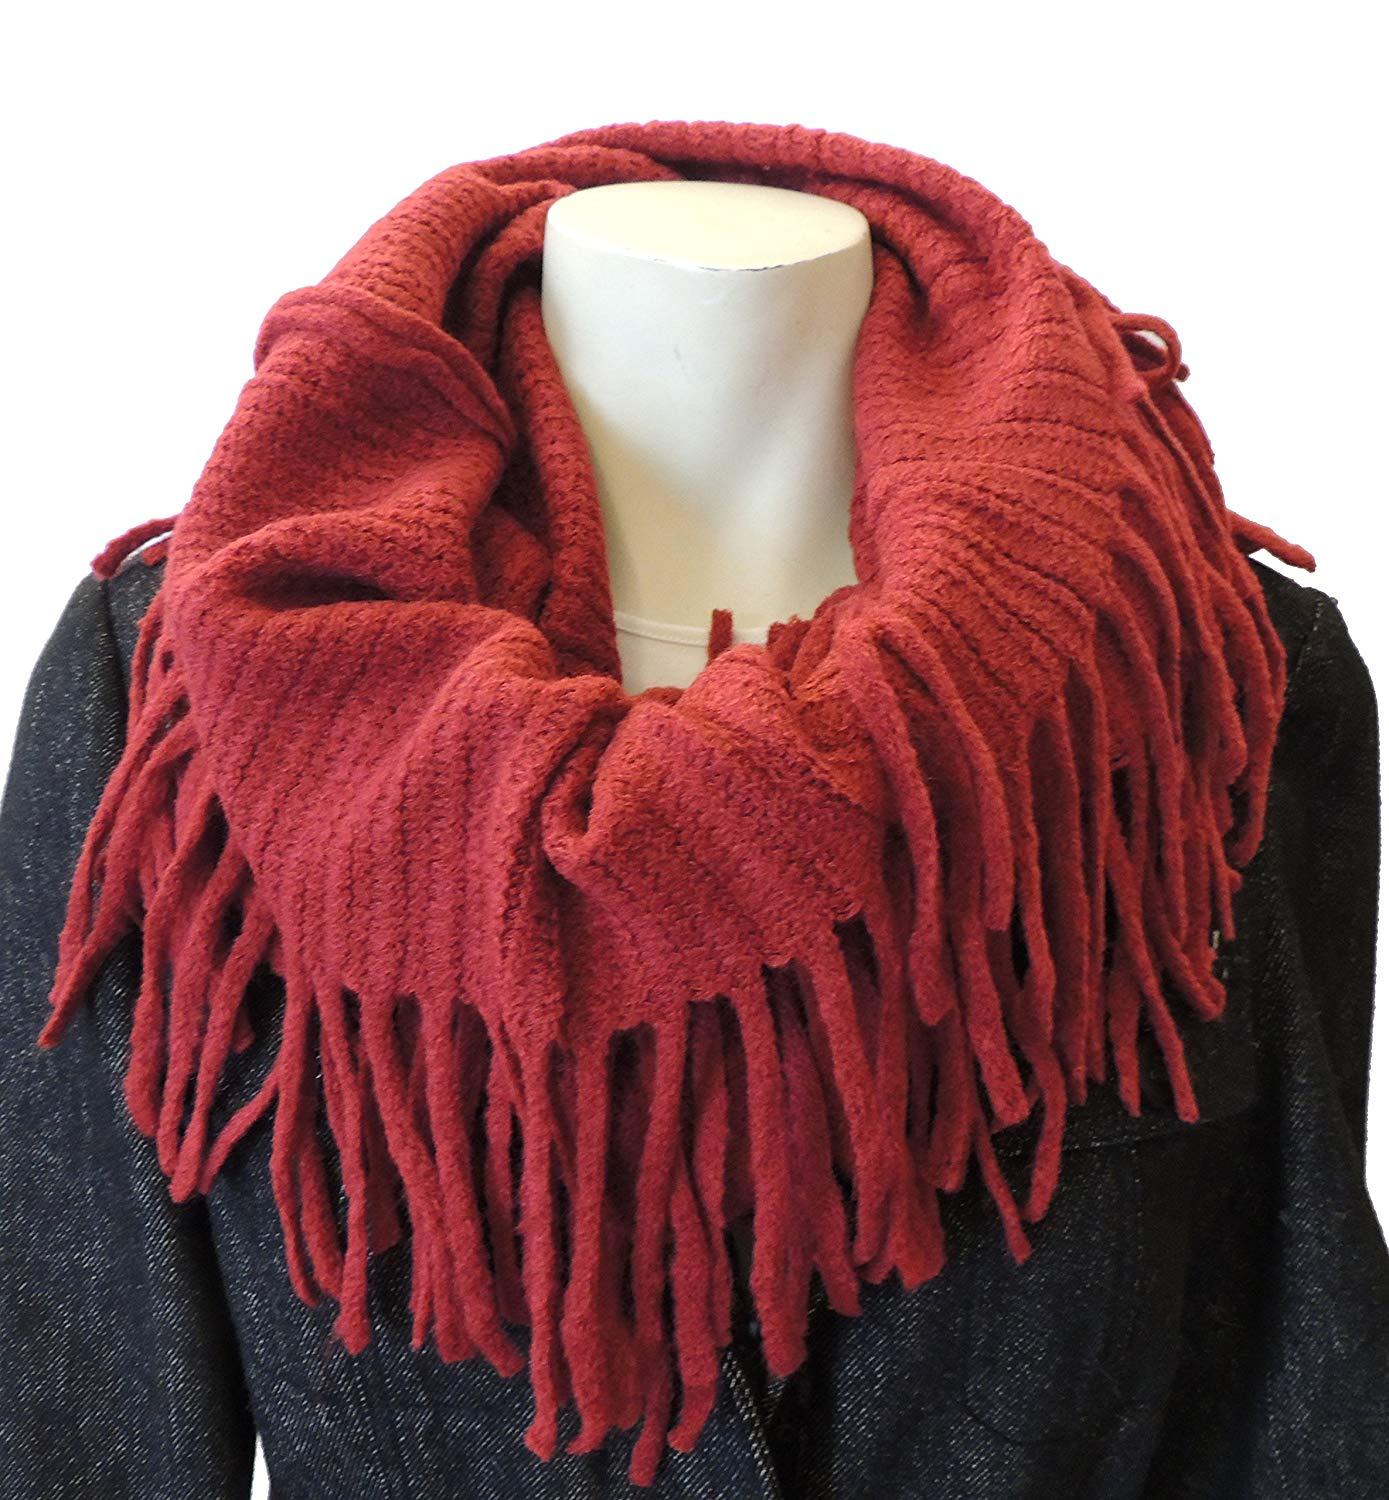 Women's Infinity Scarf, Fringed, Warm, Soft, Ribbed, Fashion Winter Accessory